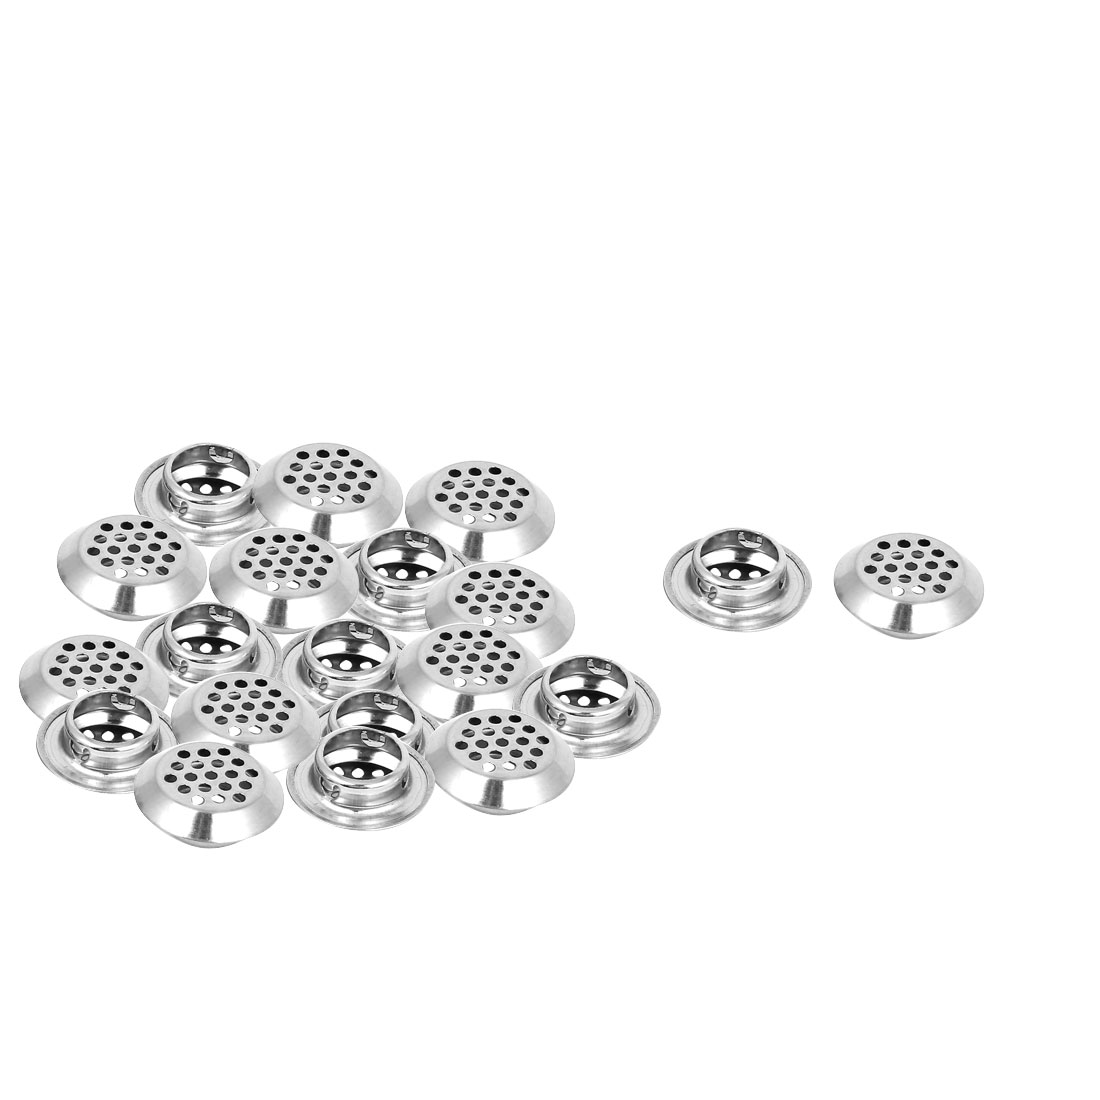 Metal 29mm Bottom Dia Perforated Round Mesh Air Vents Ventilation Louvers 20pcs